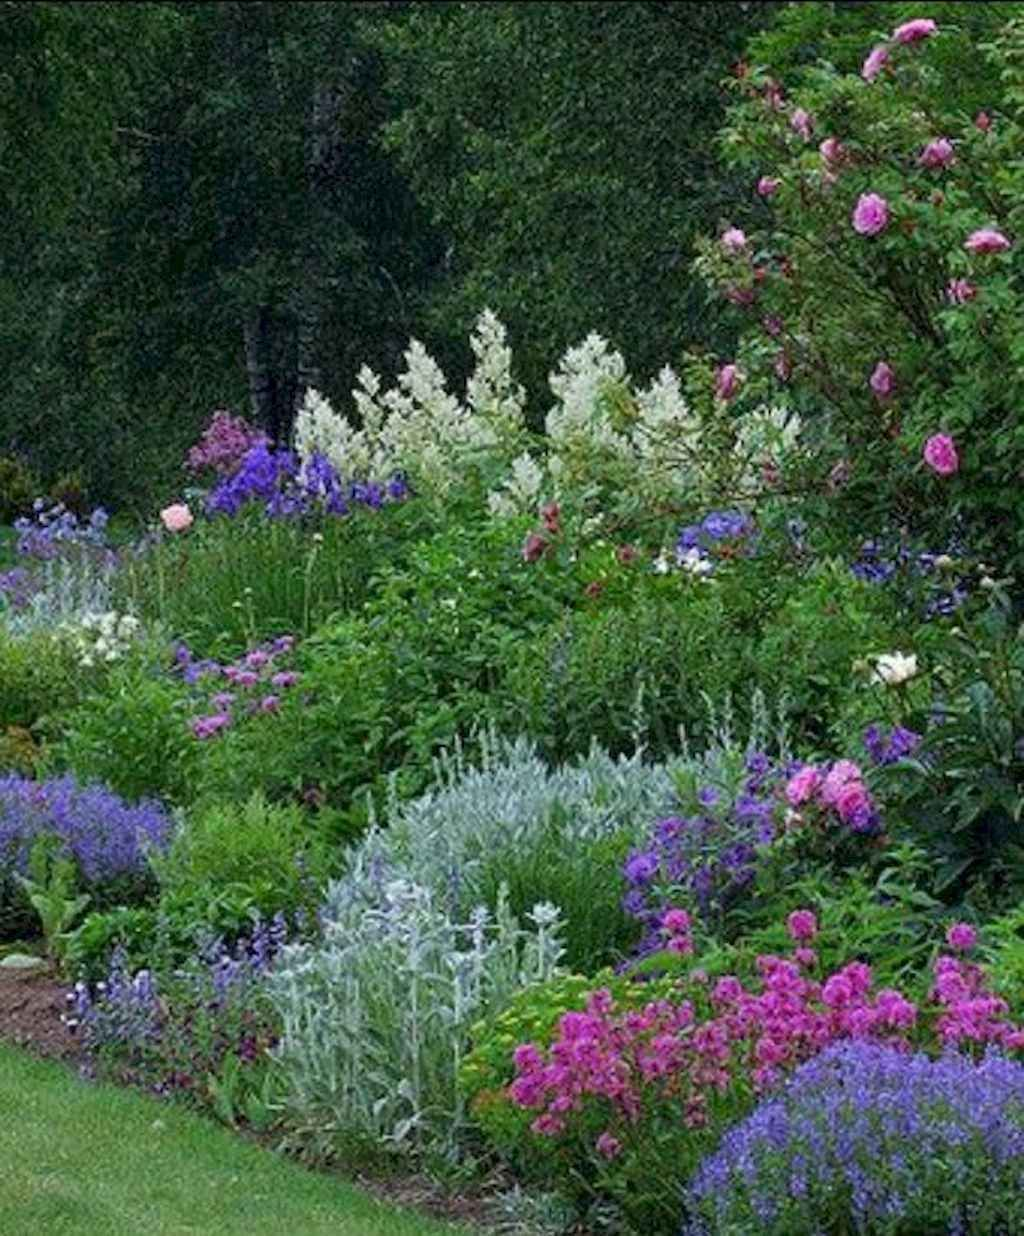 05 Beautiful Small Cottage Flowers Garden For Backyard Ideas Decoradeas Small Cottage Garden Ideas Cottage Garden Design Small Backyard Landscaping